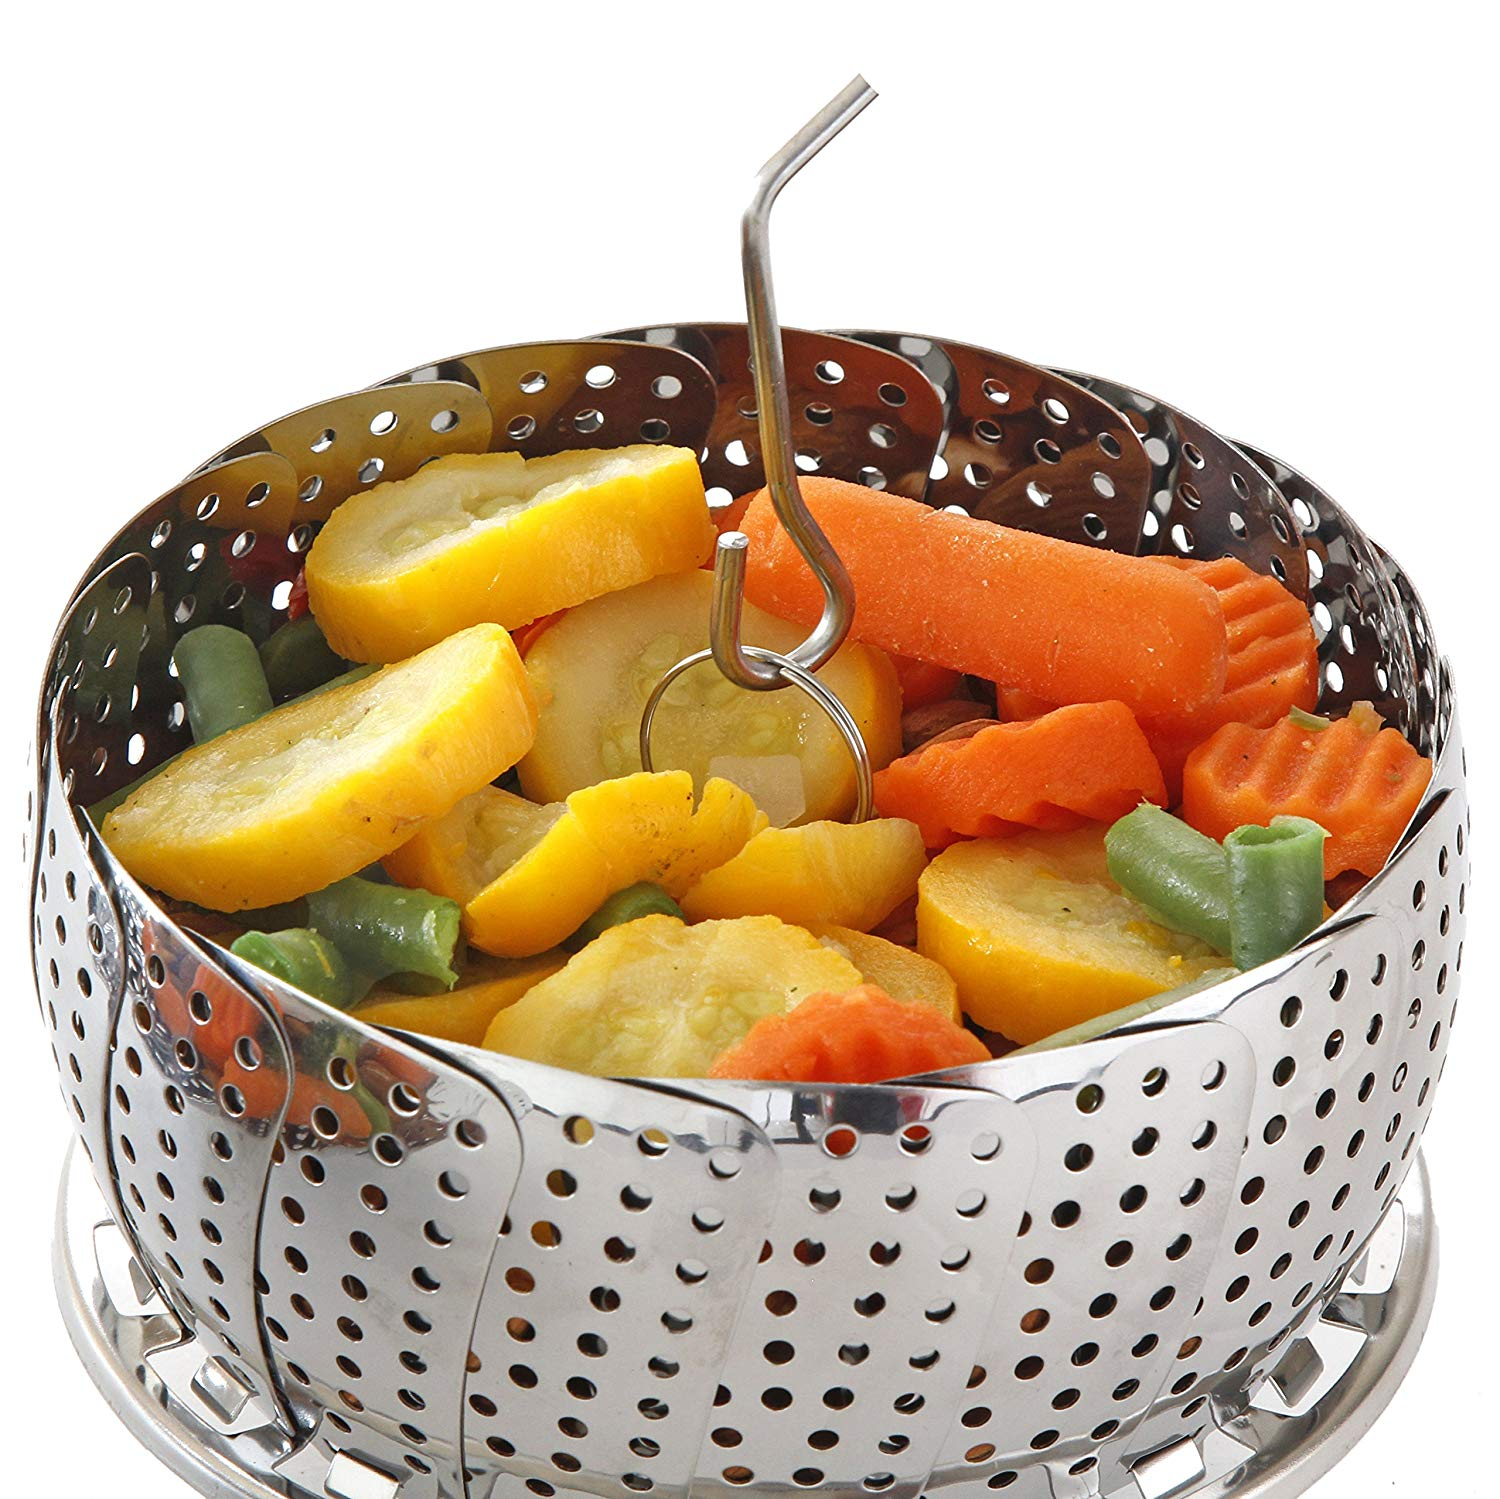 Stainless Steel Folding Steamer Basket-Expandable to Fit Various Size Pot